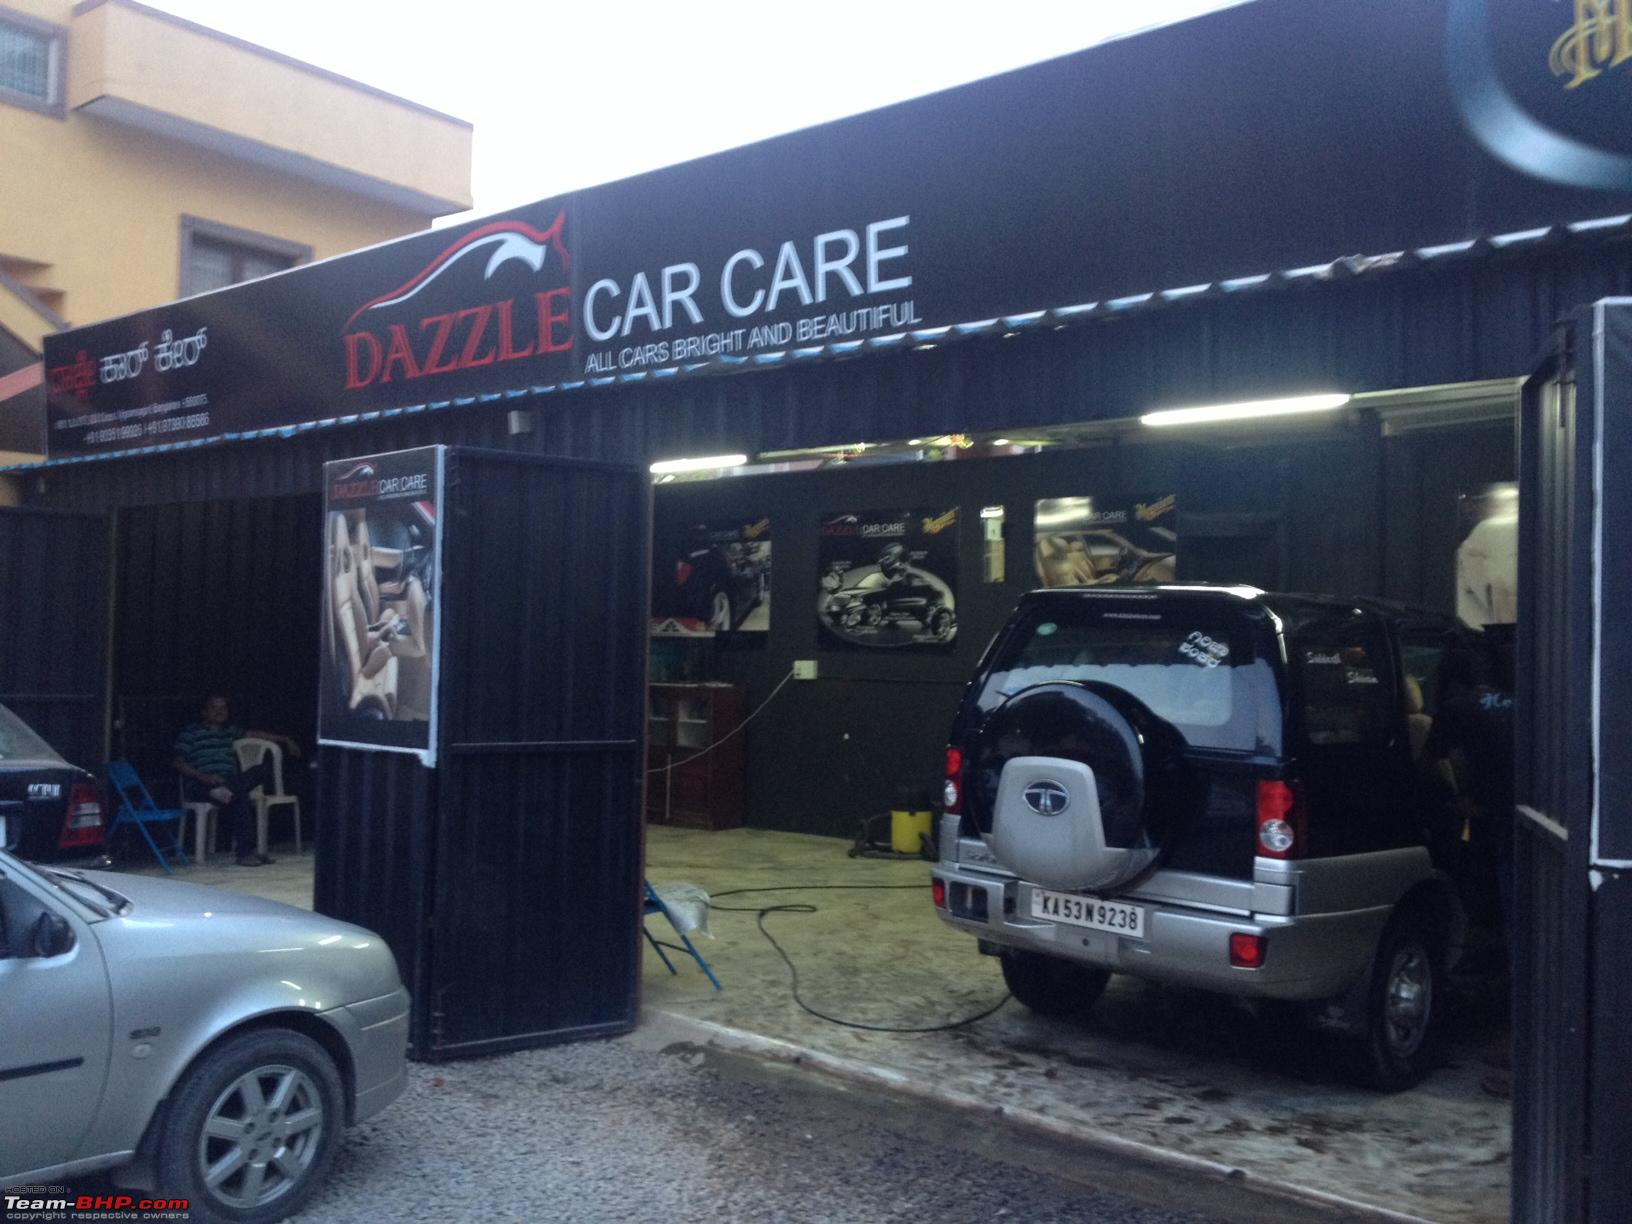 Car Wash Dazzle Car Care Bangalore Team Bhp